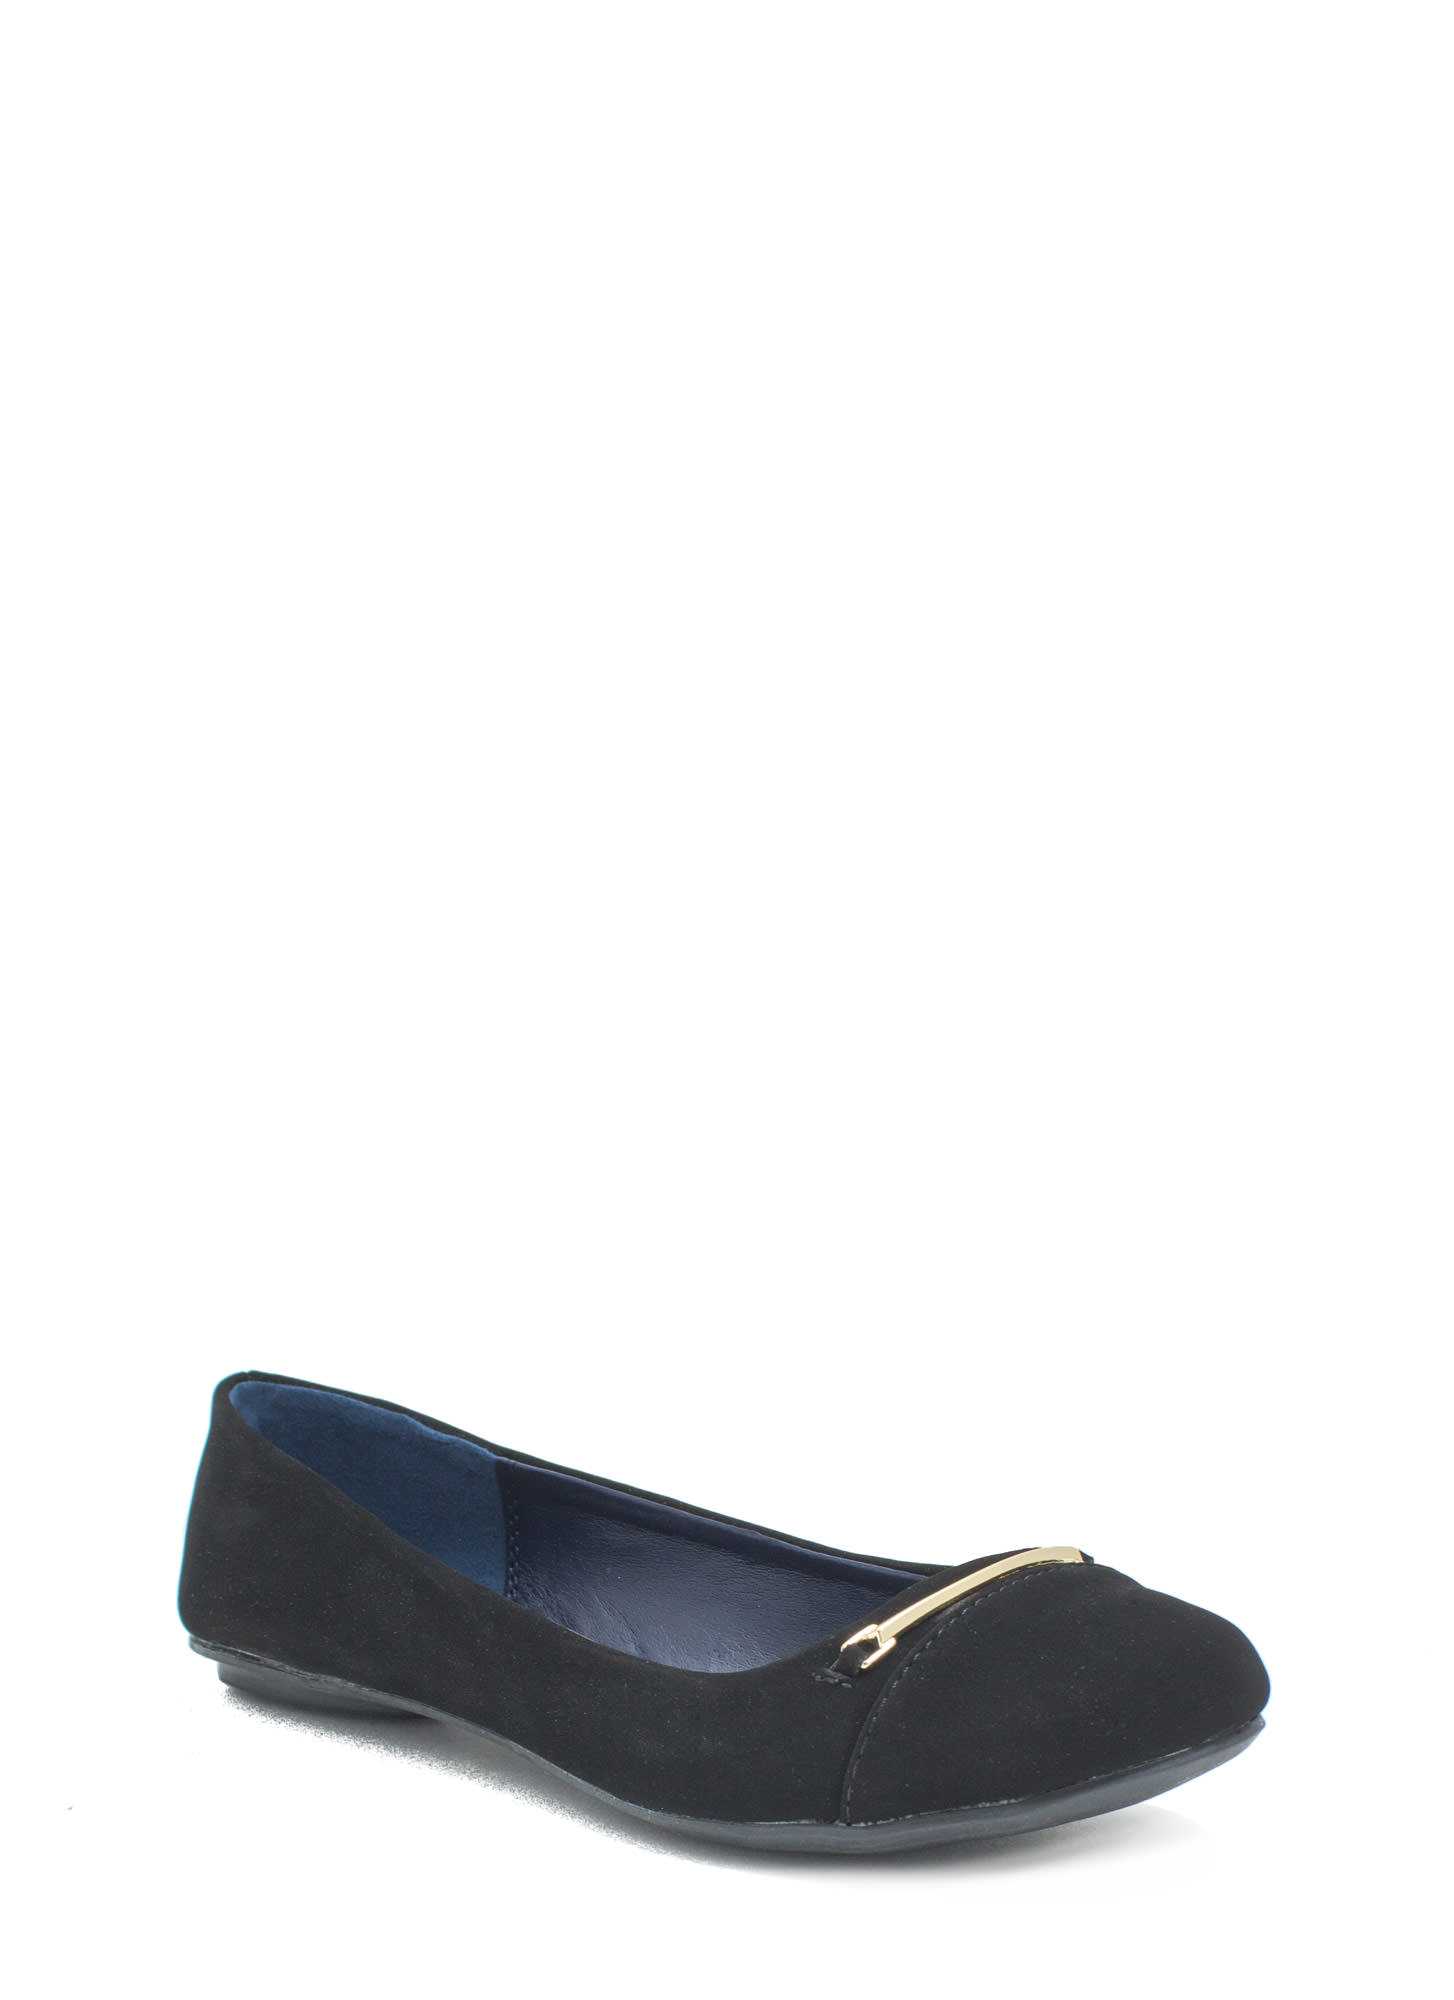 Bar Hopper Faux Nubuck Flats BLACK